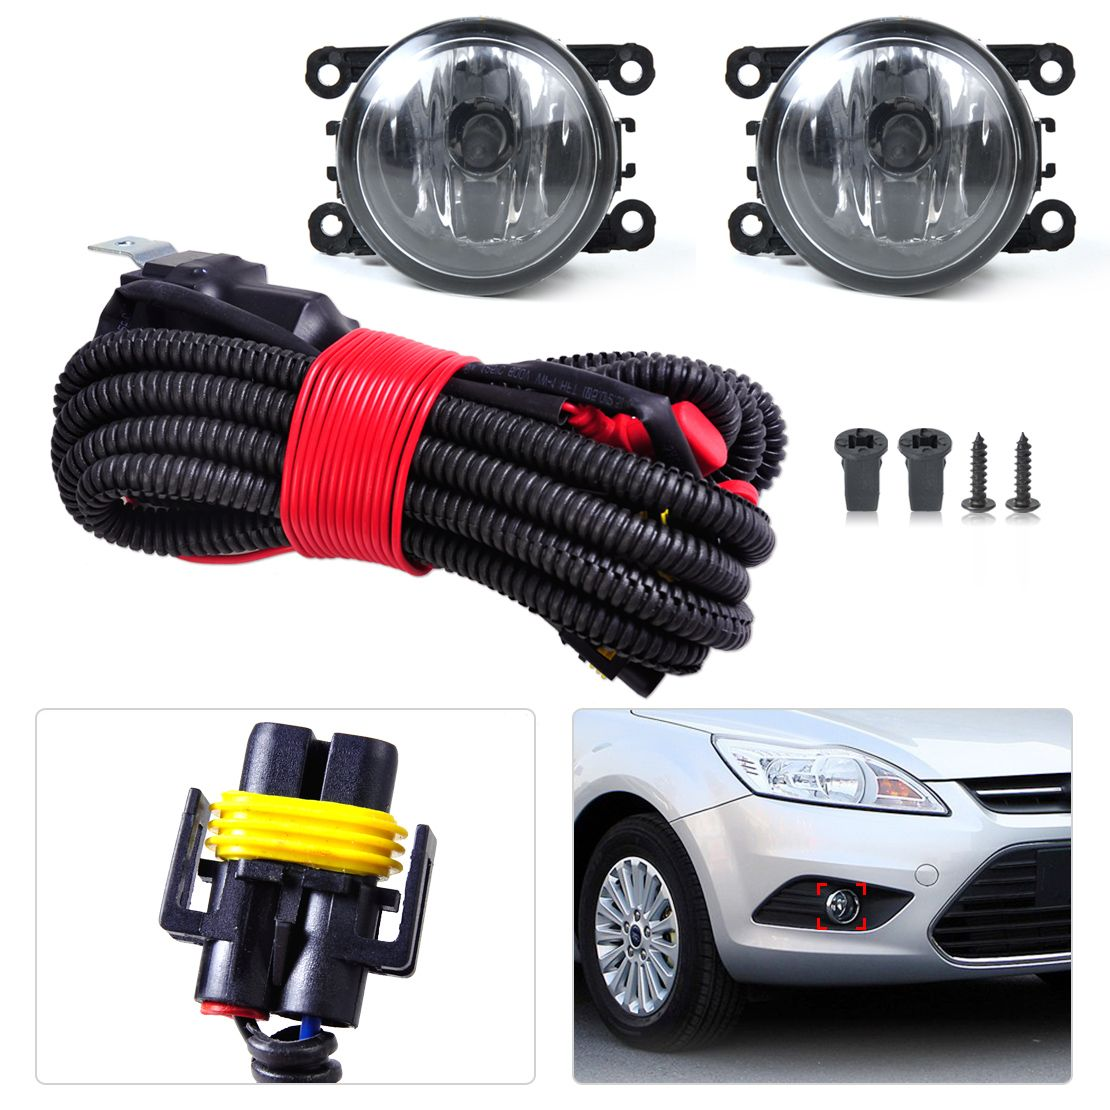 medium resolution of new h11 wiring harness sockets wire connector 2 fog lights lamp 4f9z 15200 aa for ford focus honda cr v pilot acura tsx nissan